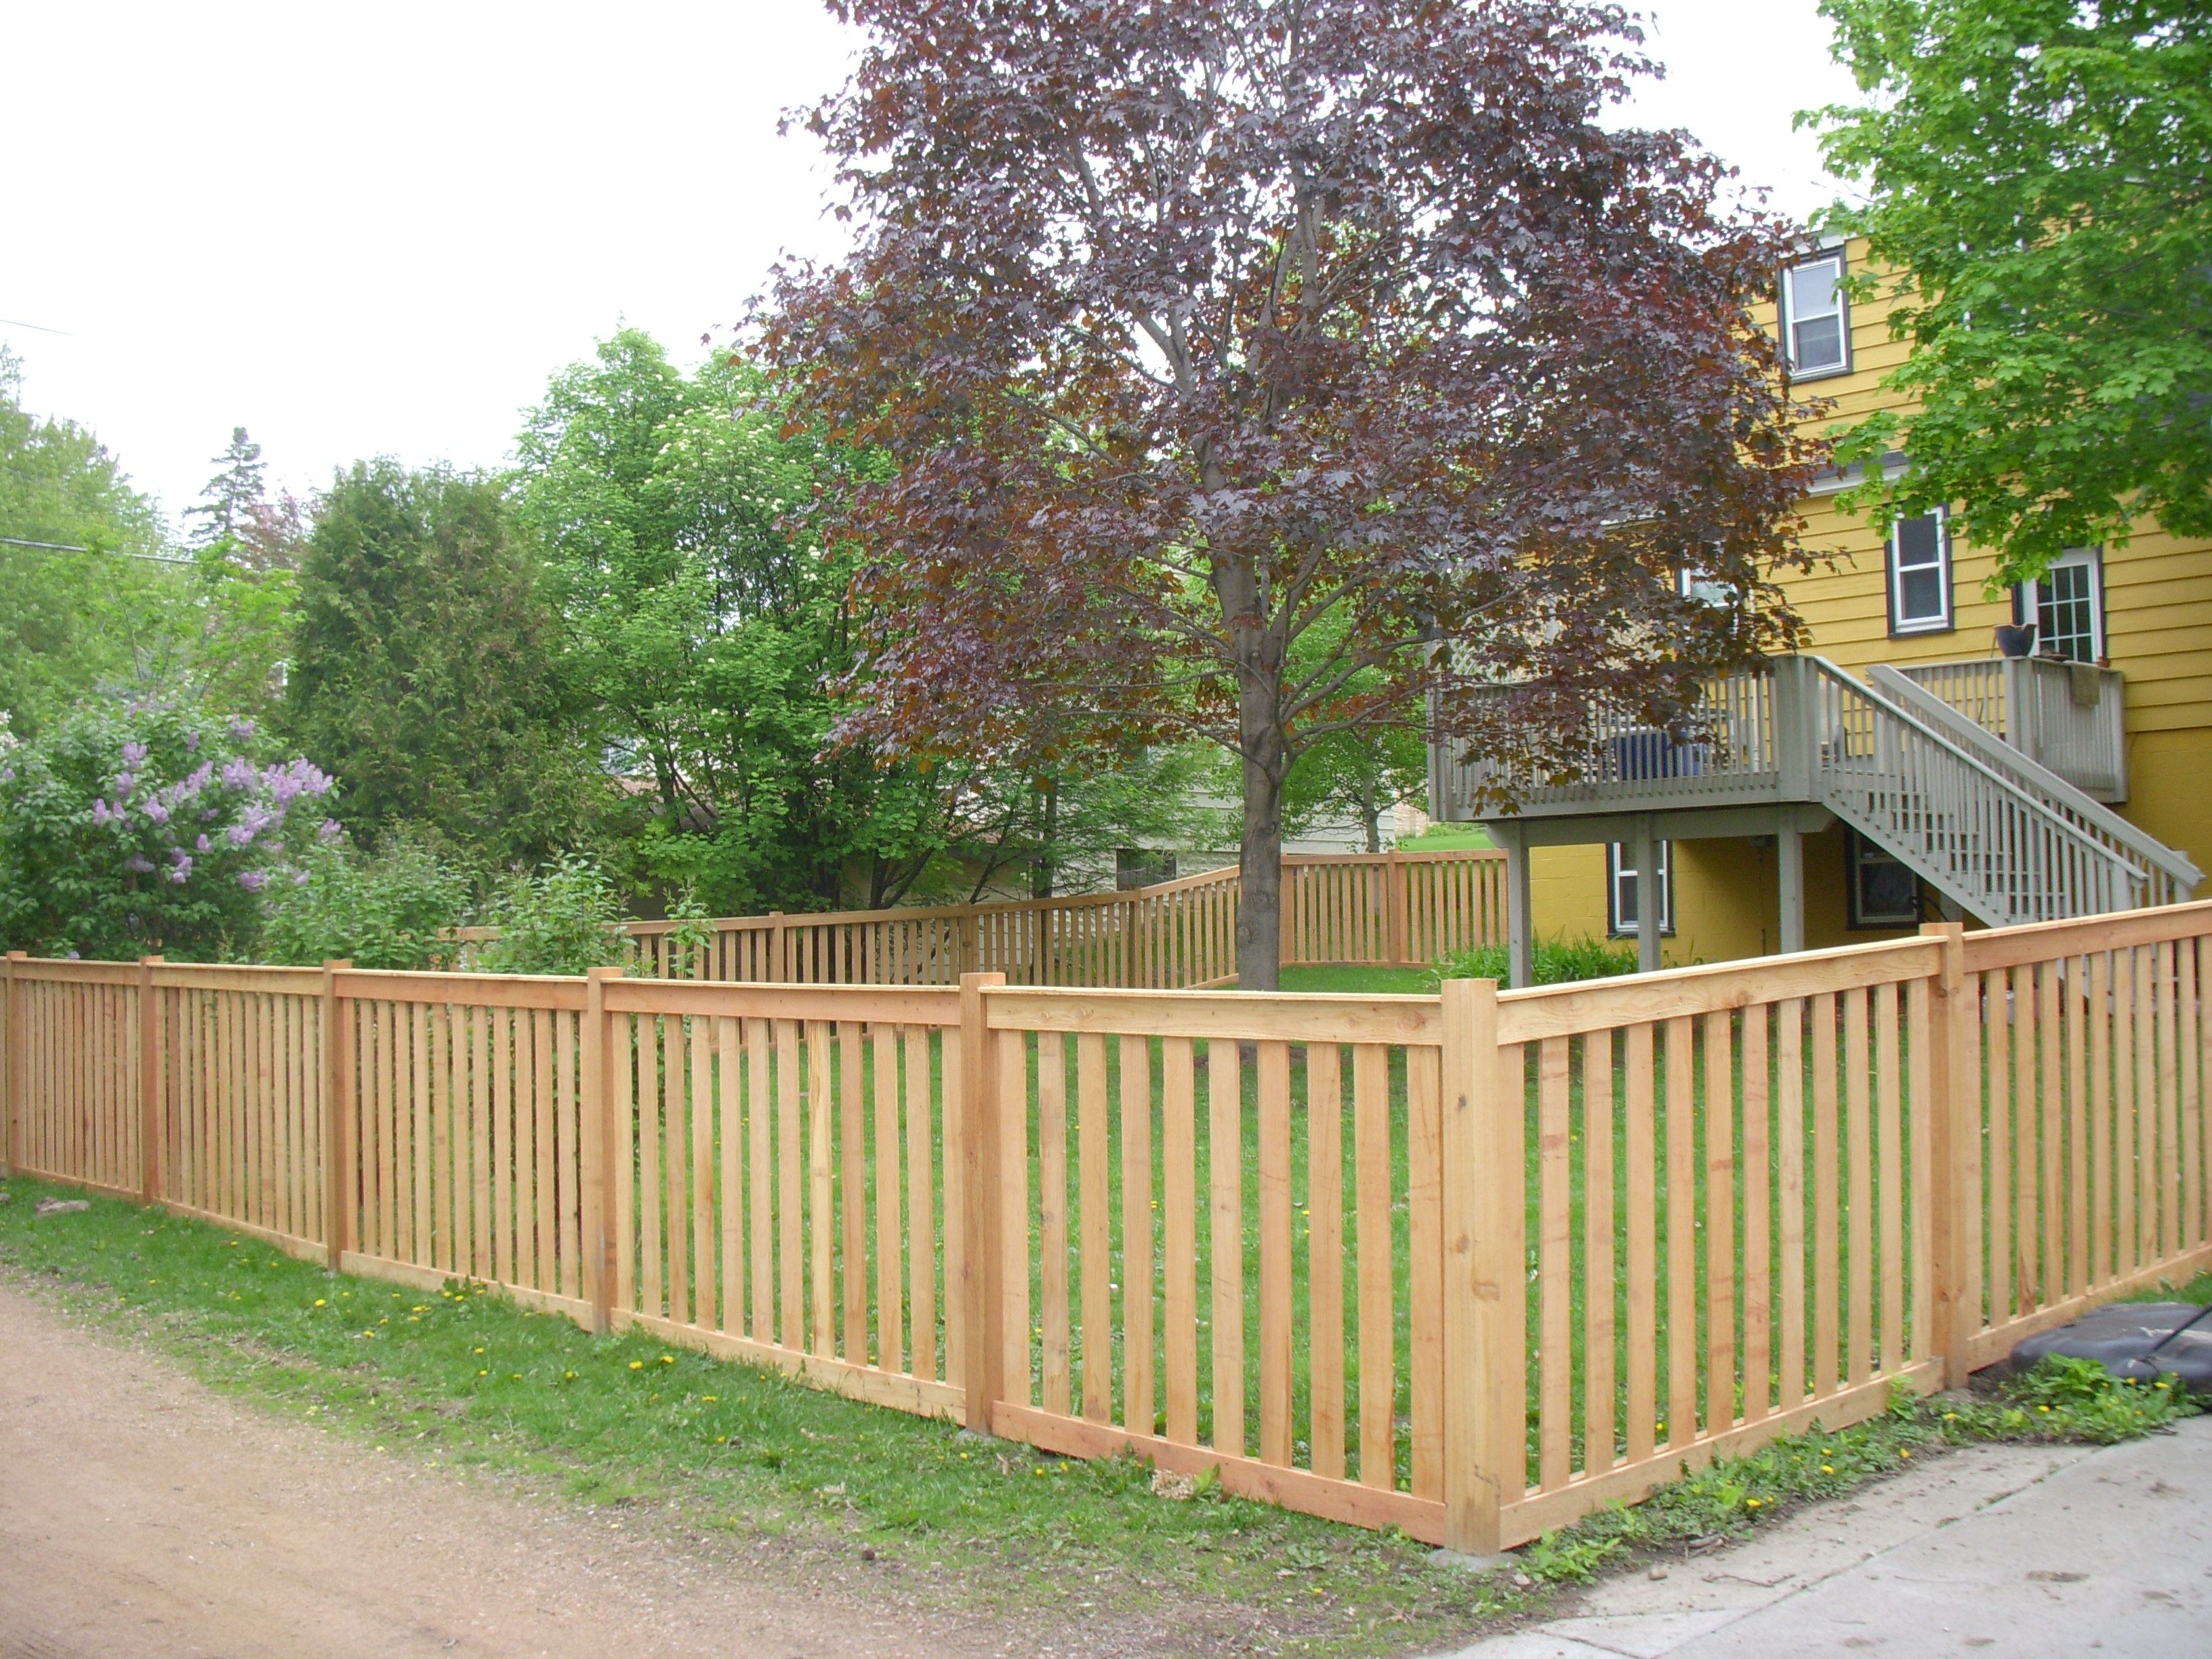 Cedar Picket Dan S Fence Llc Backyard Fences Privacy Fence Designs Wood Picket Fence